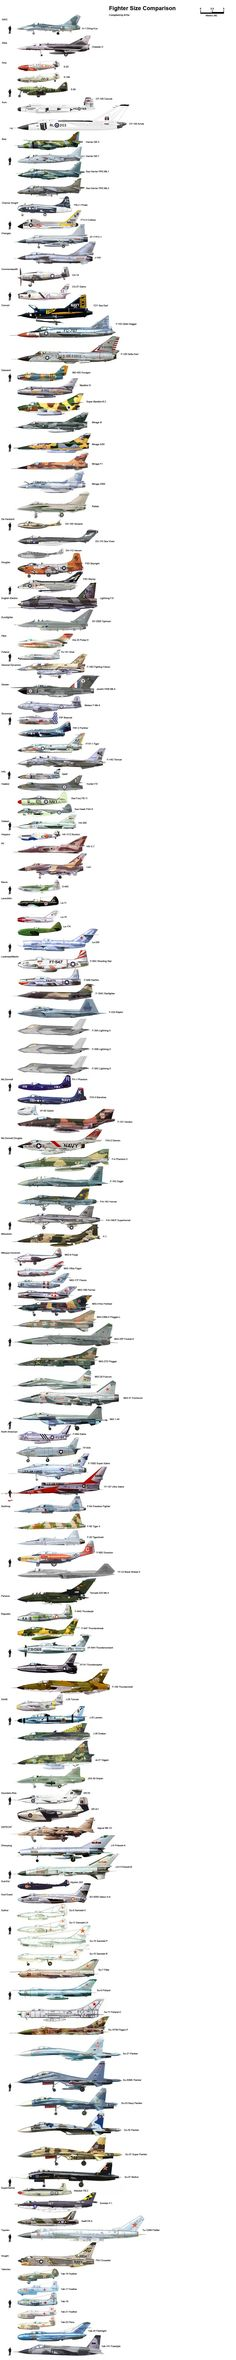 Fighters size comparison